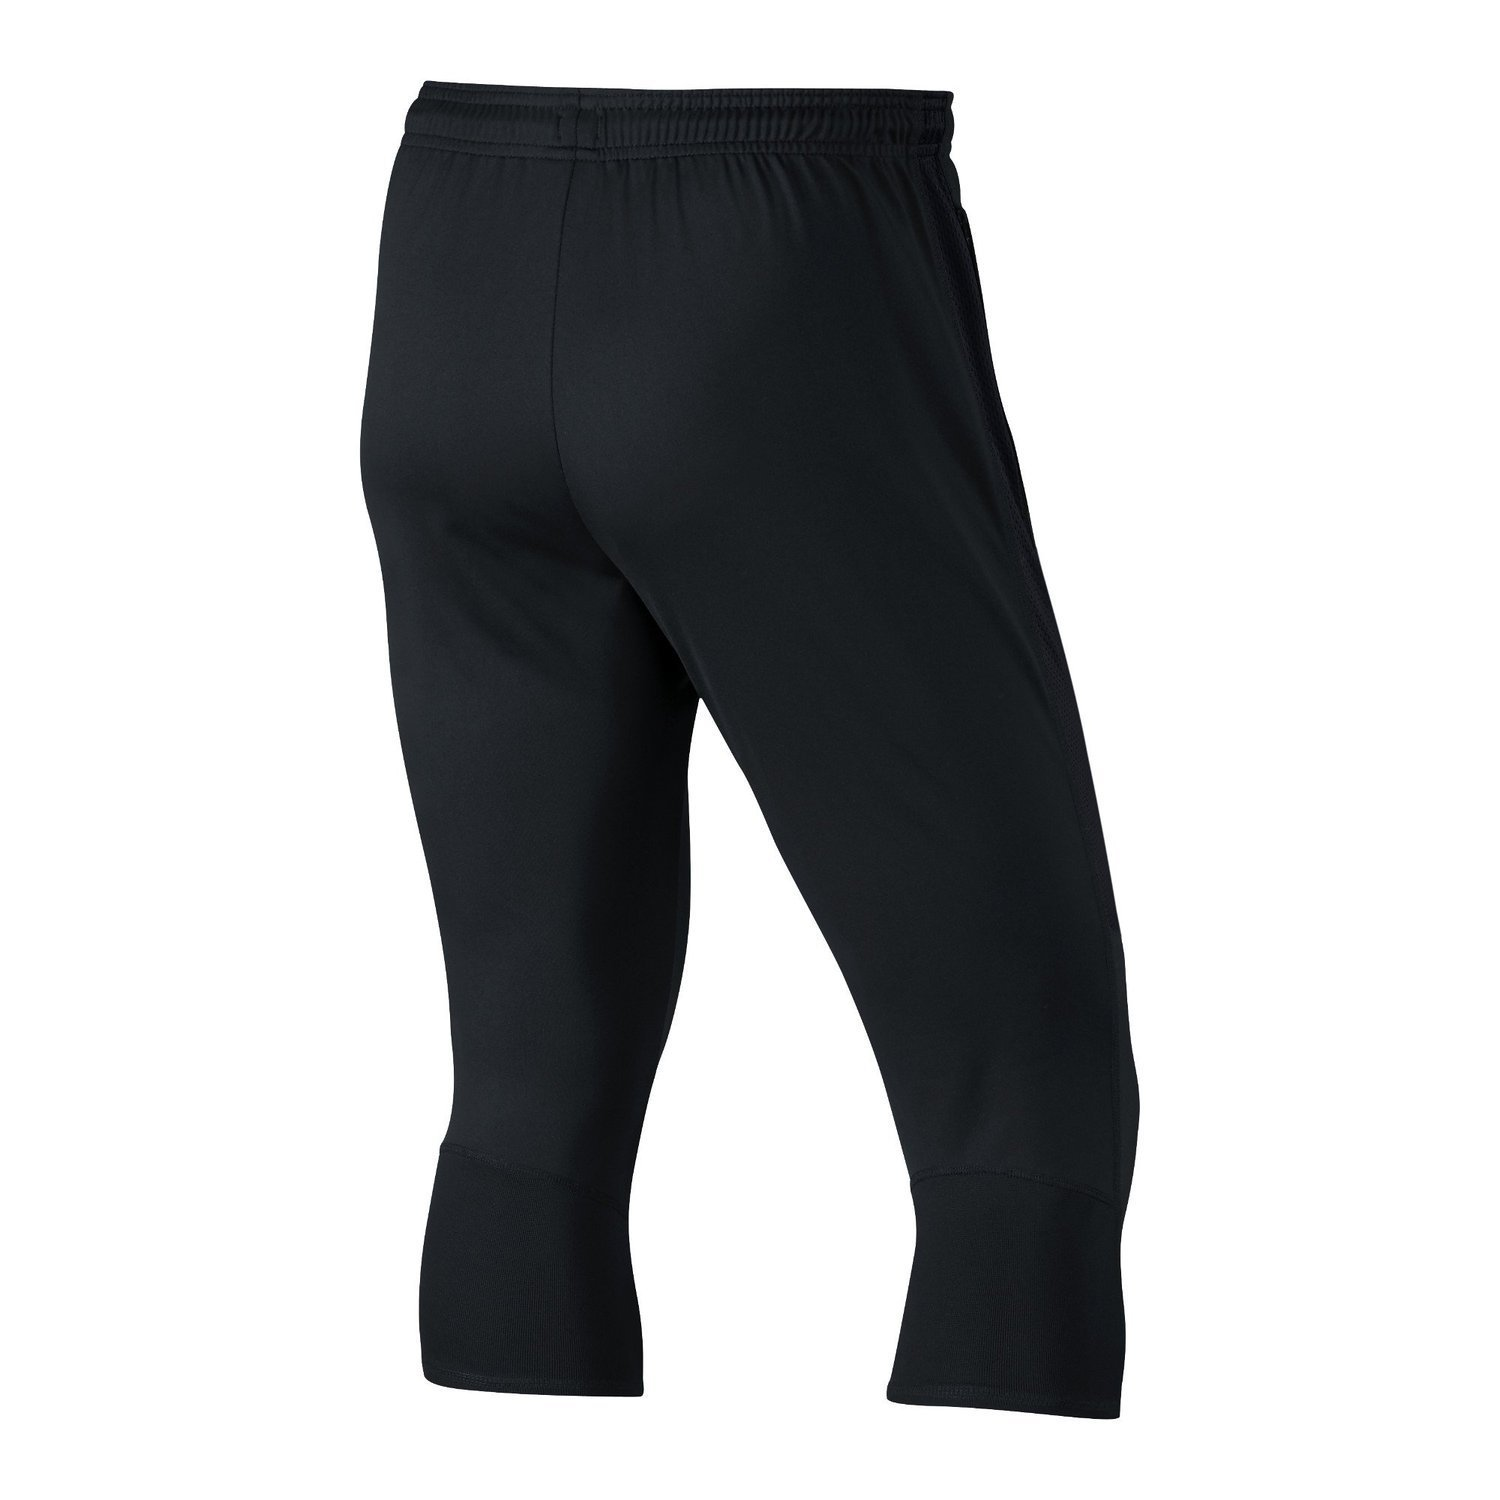 f6cb388fa25d5a Nike Strike 3 4 Pant Hose schwarz F011 Small  Amazon.co.uk  Sports    Outdoors